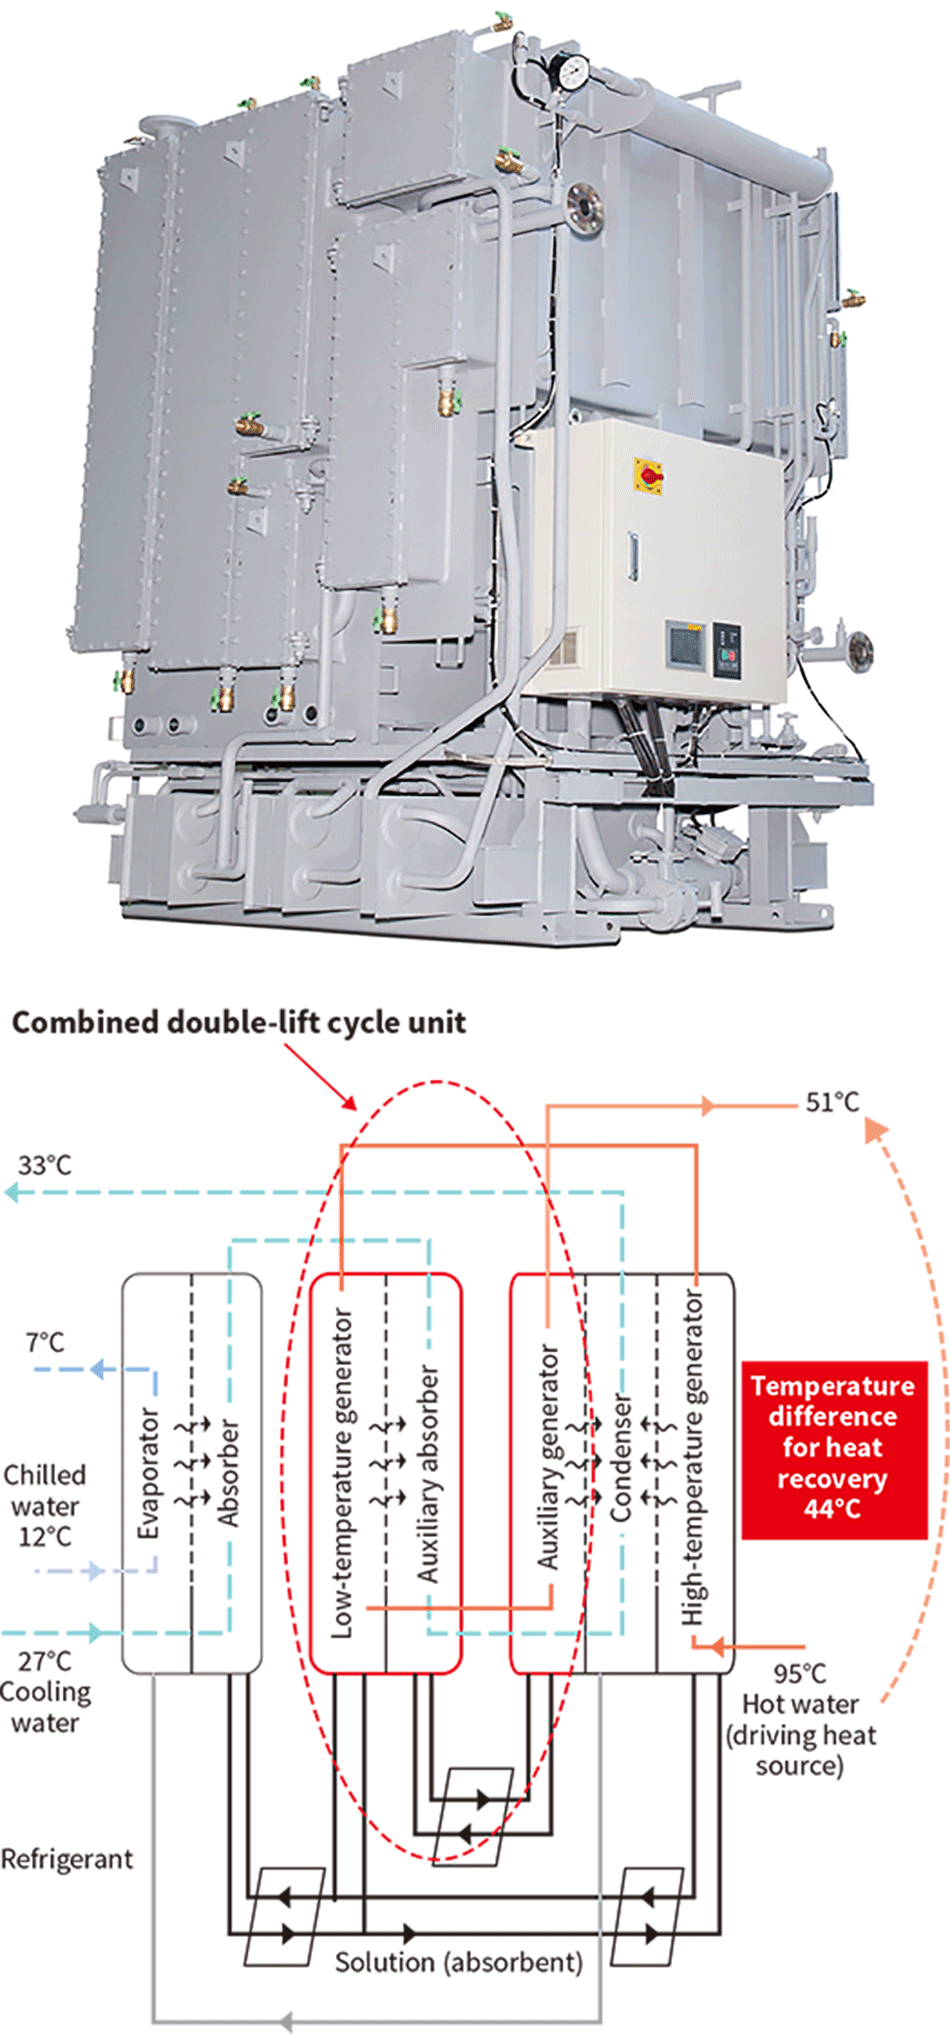 Single-effect double-lift absorption chiller (top) and cycle diagram (bottom)